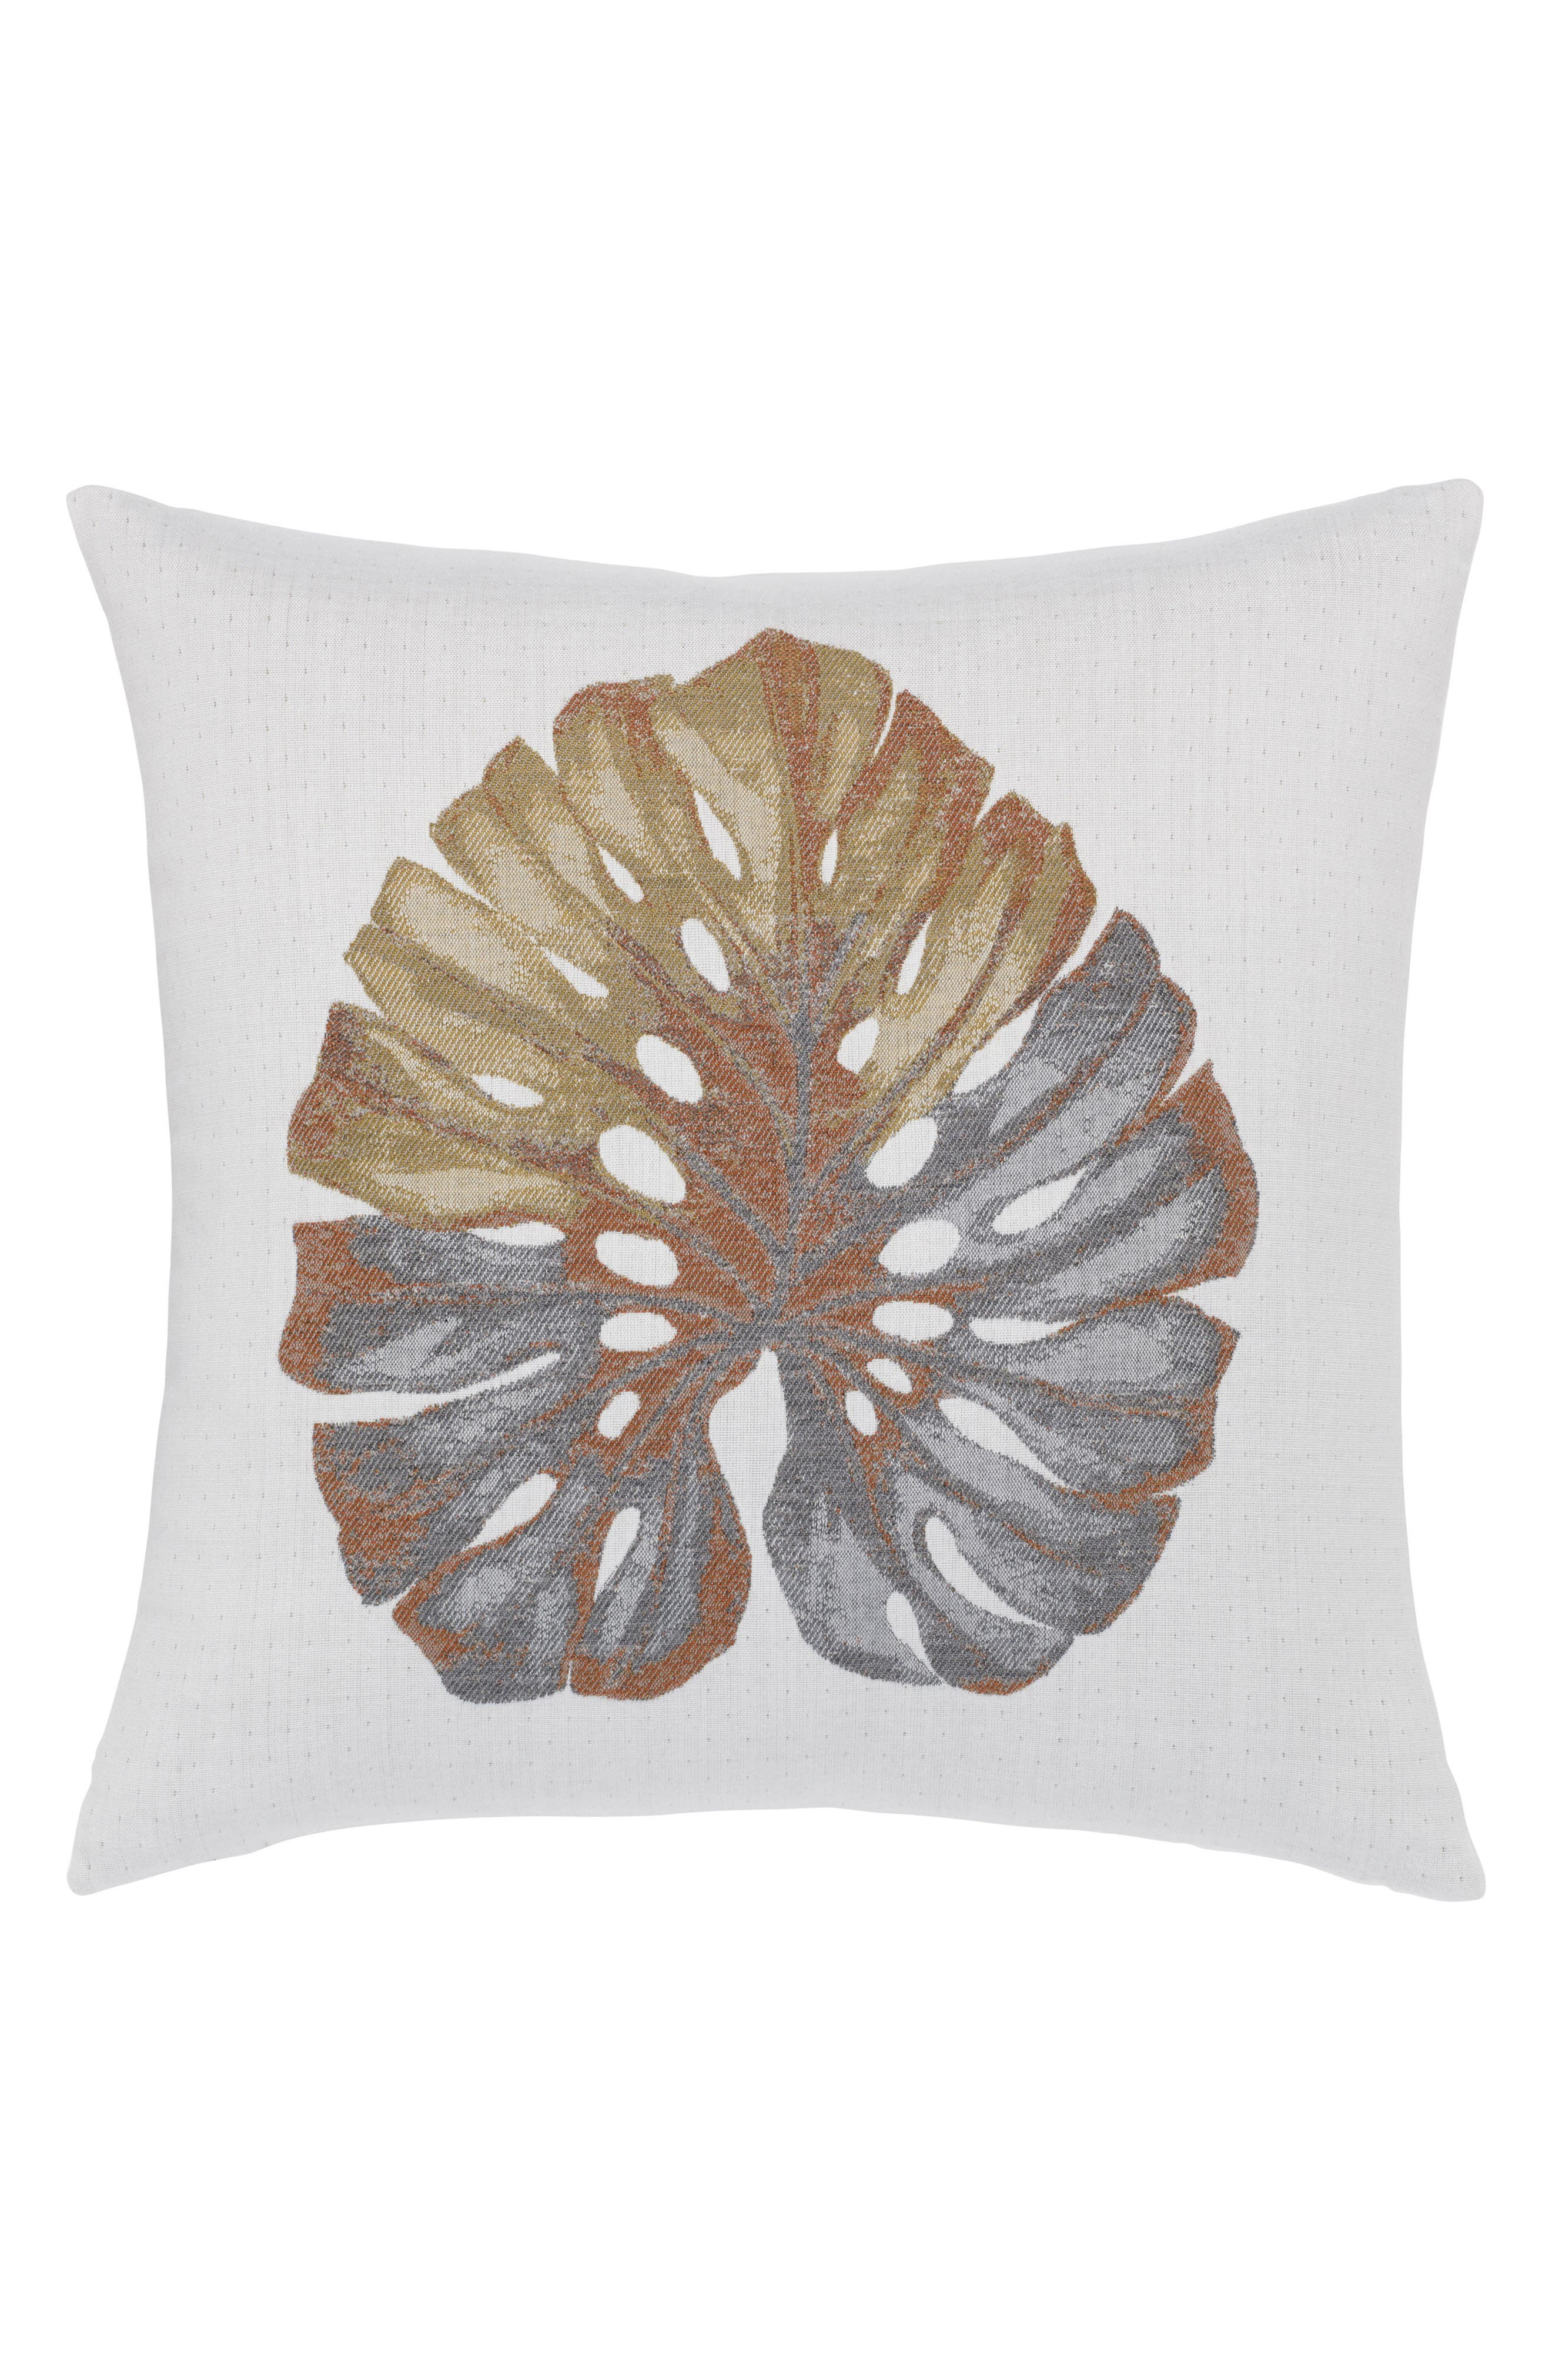 Metallic Leaf Indoor/Outdoor Accent Pillow,                             Main thumbnail 1, color,                             710